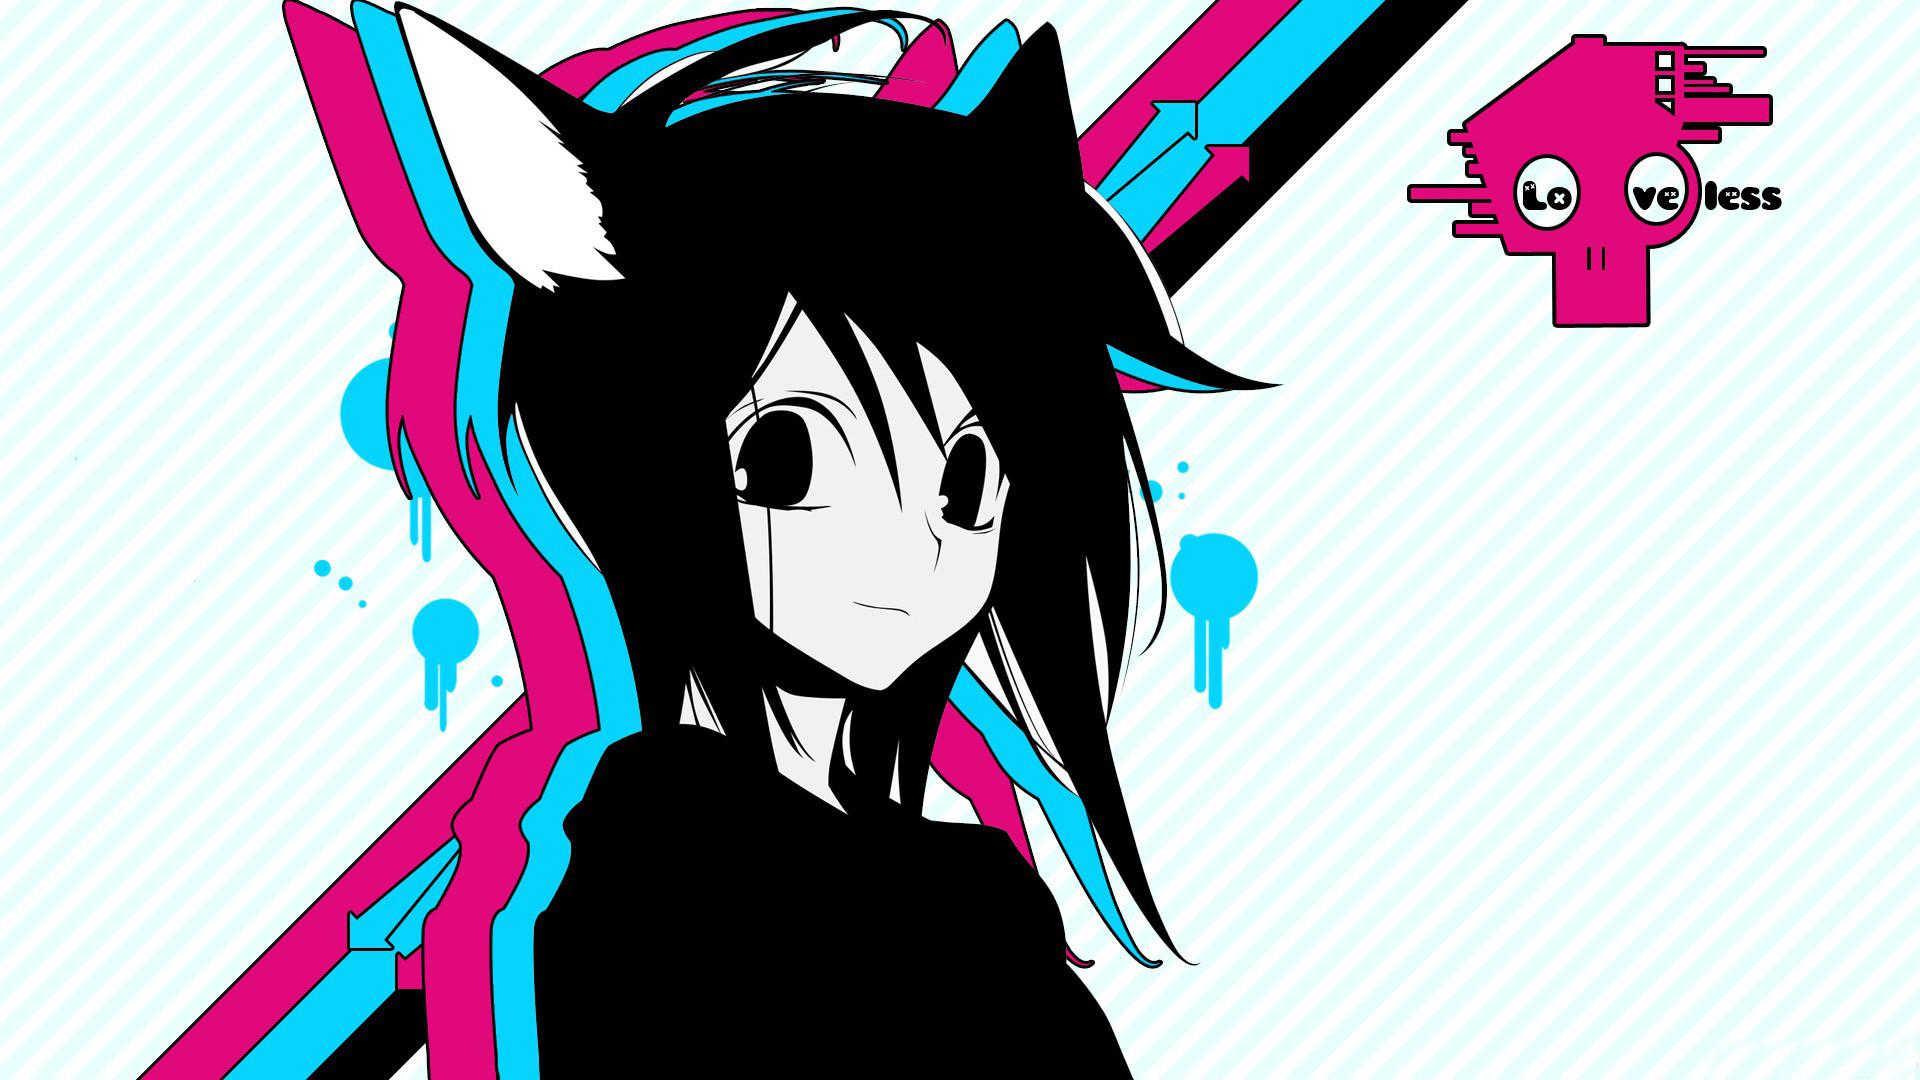 Depressed Anime Boy Cover Wallpapers - Wallpaper Cave